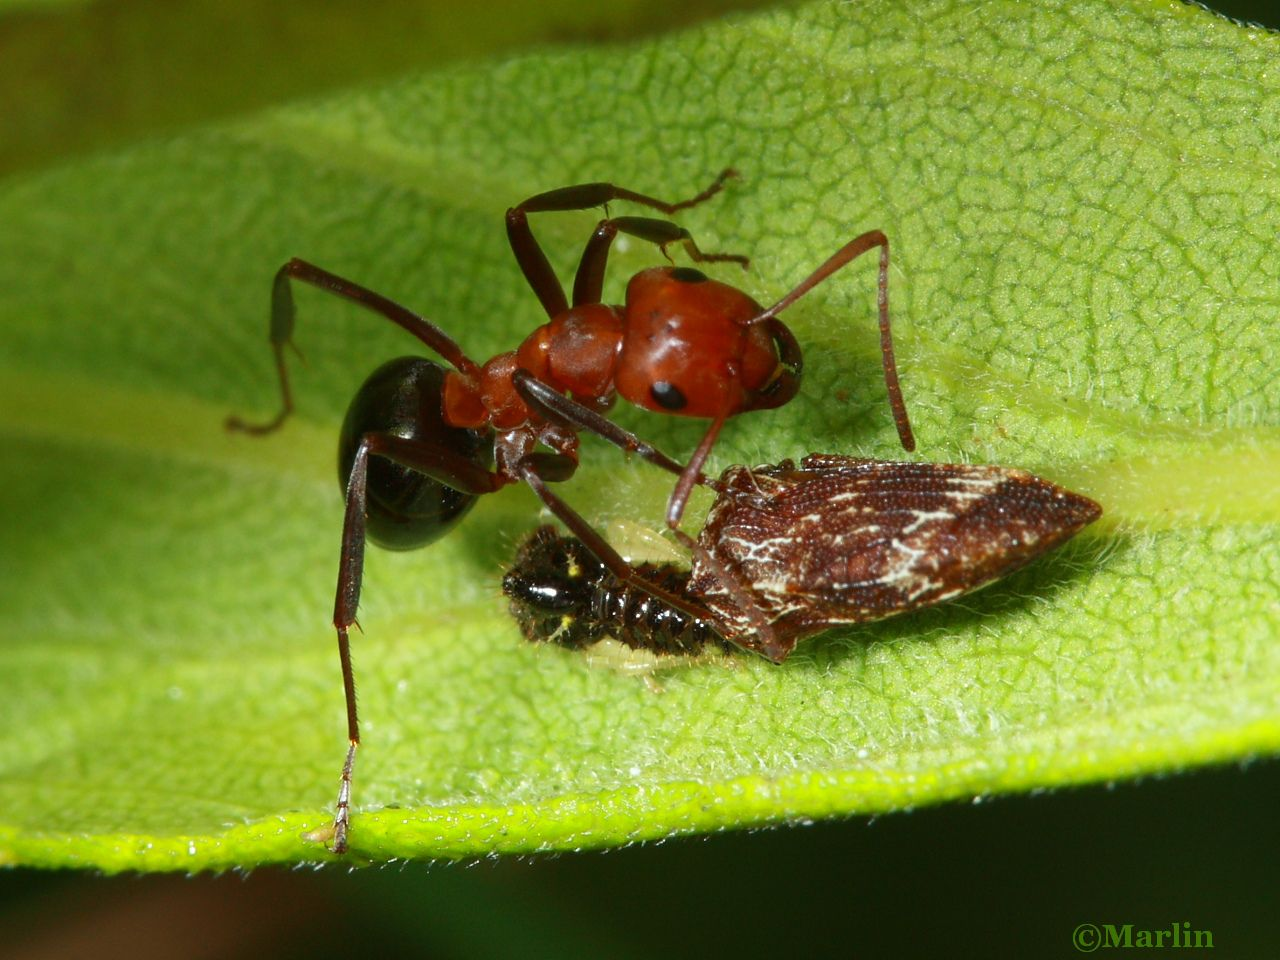 Allegheny mound ant and hoppers (adult & nymph)